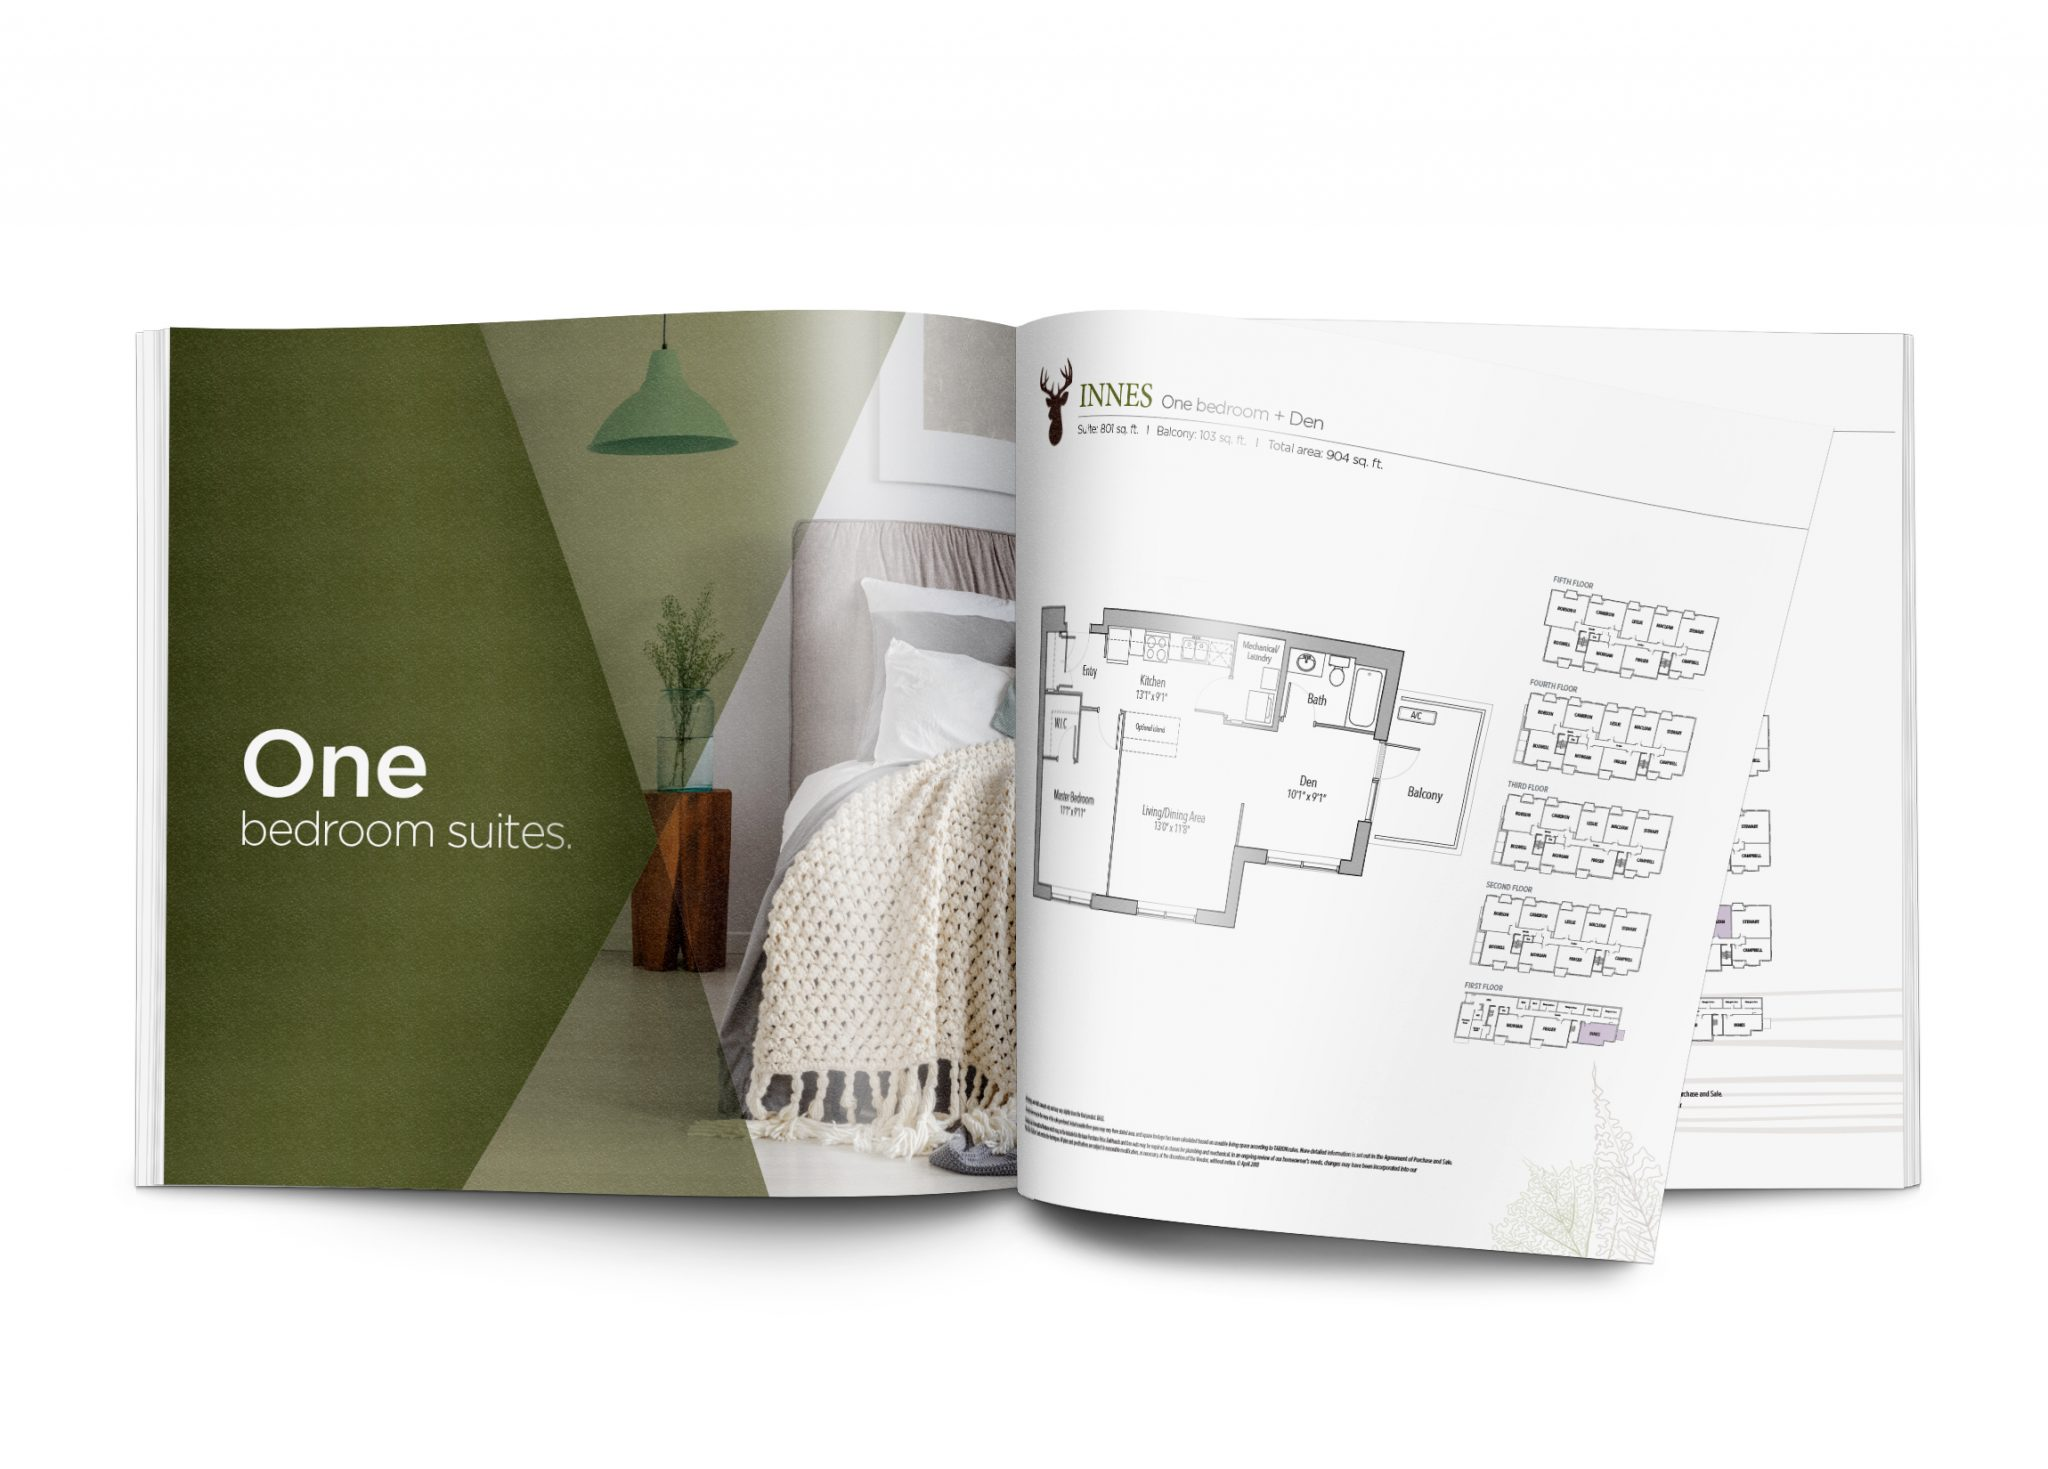 One bedroom brochure spread